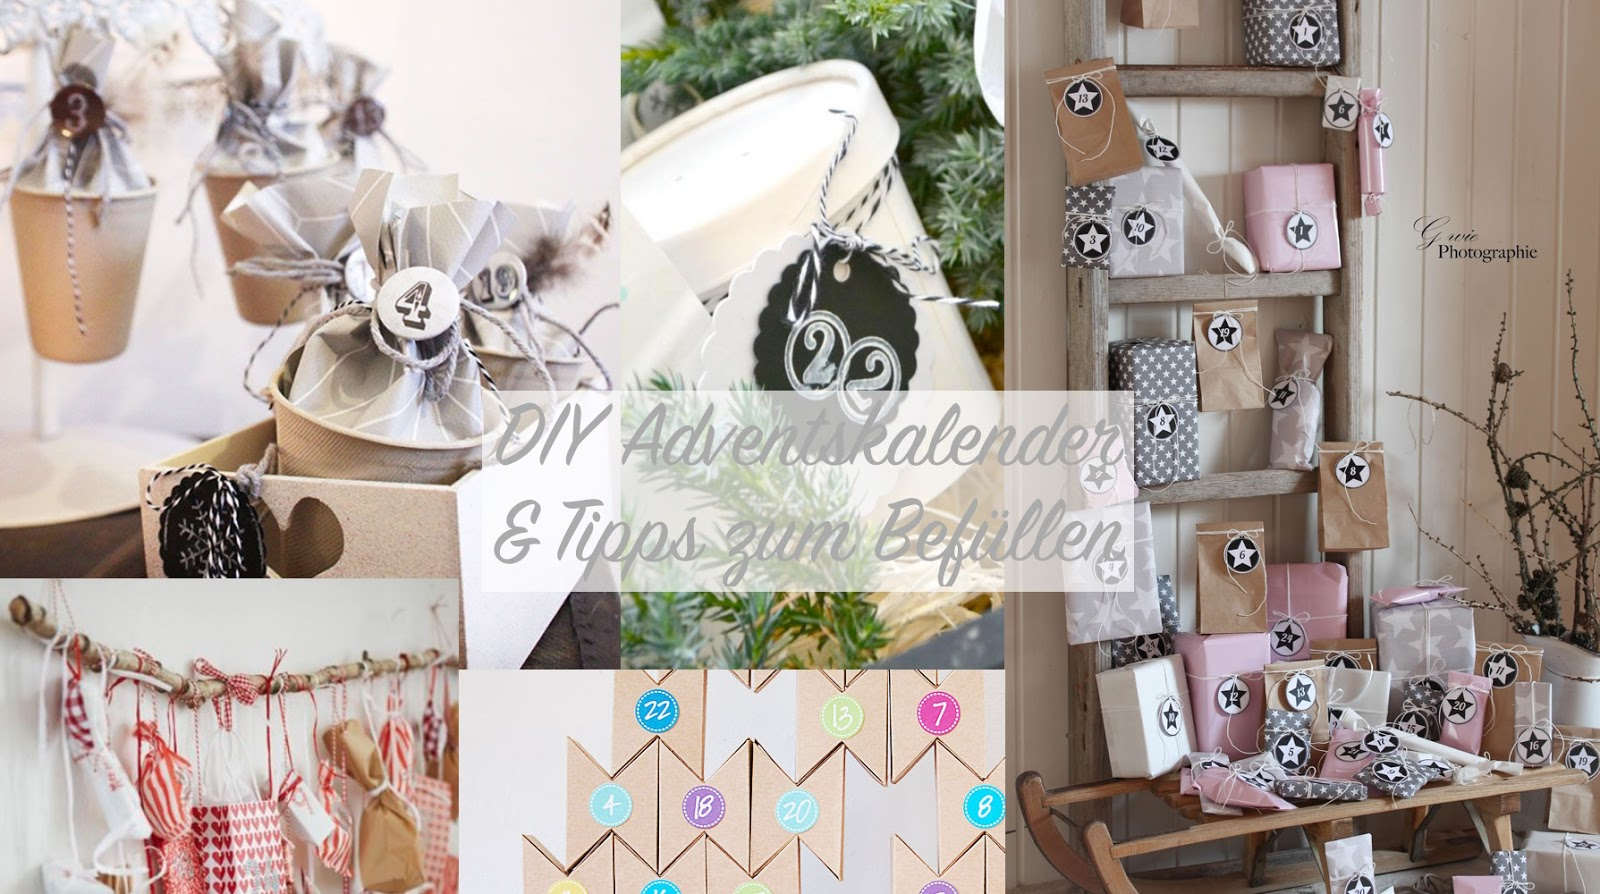 Adventskalender Ideen Füllung Early Bird Adventskalender Füllen Einfache Diy The Blonde